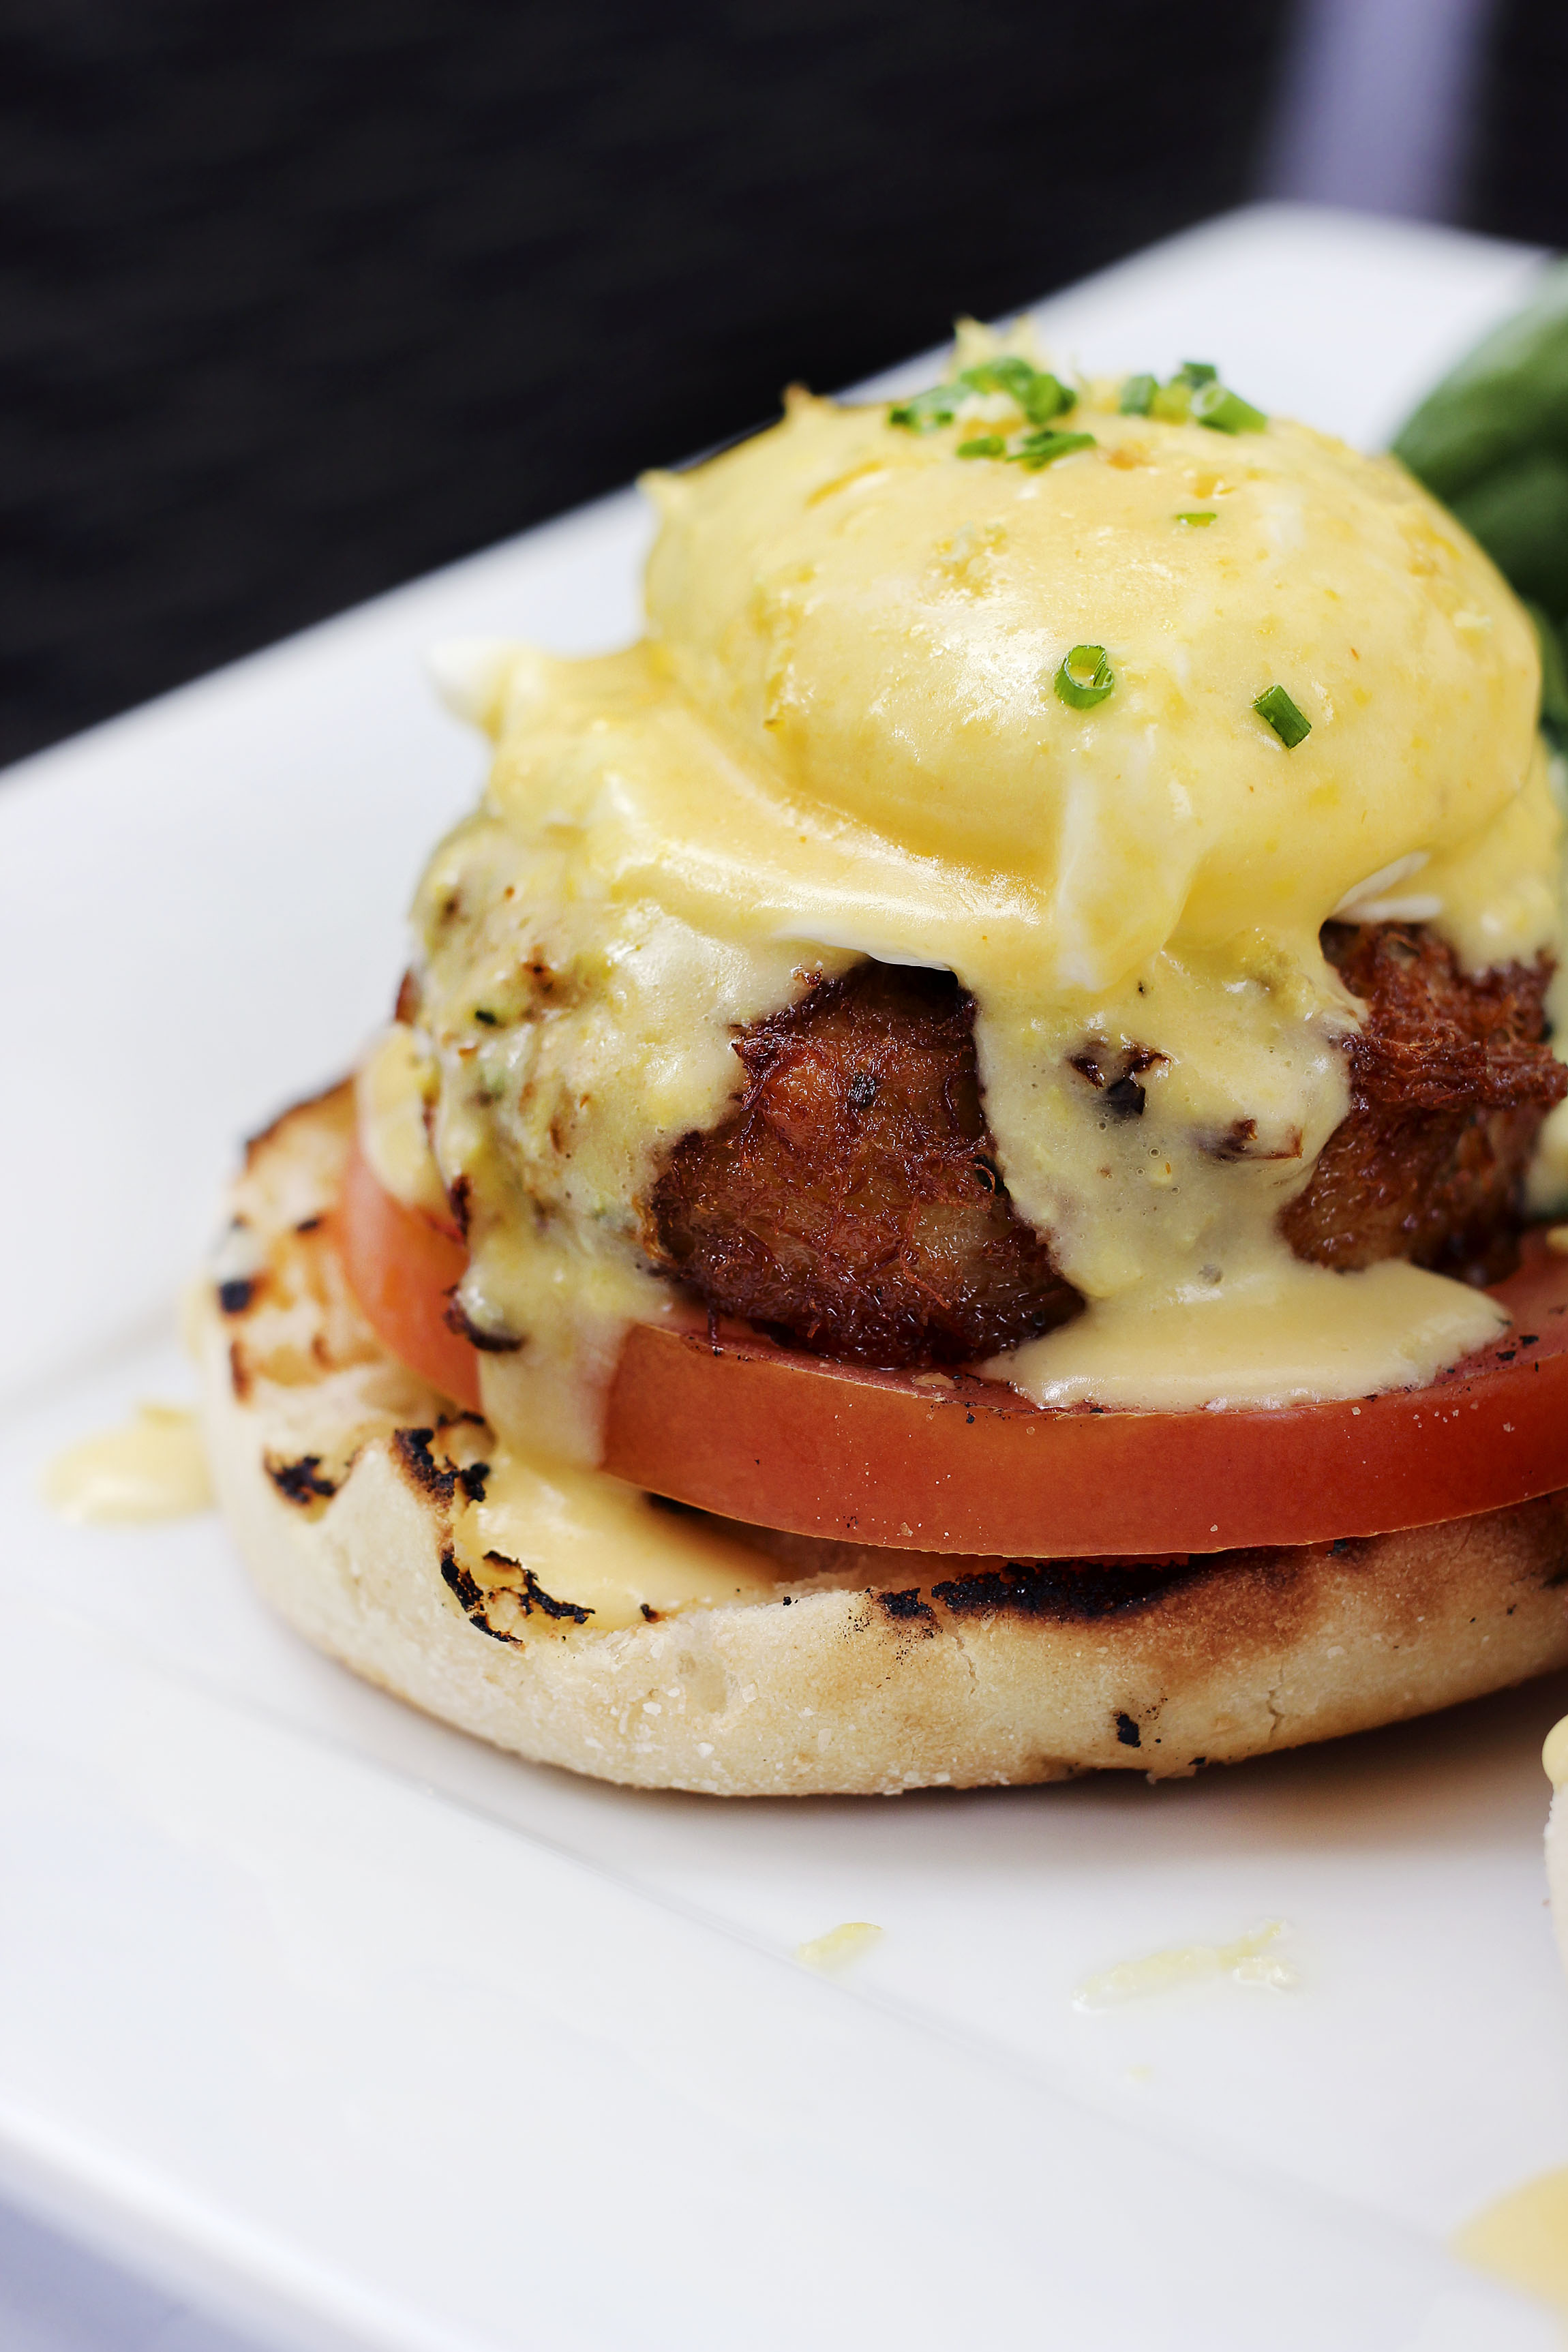 CRAB CAKE BENEDICT - Loaded Crab Cake, grilled tomato, poached eggs, English muffin, and topped with a lemon hollandaise sauce. What I couldn't get over was the lemon hollandaise. Such a slight citrus touch, but made the dish very bright.